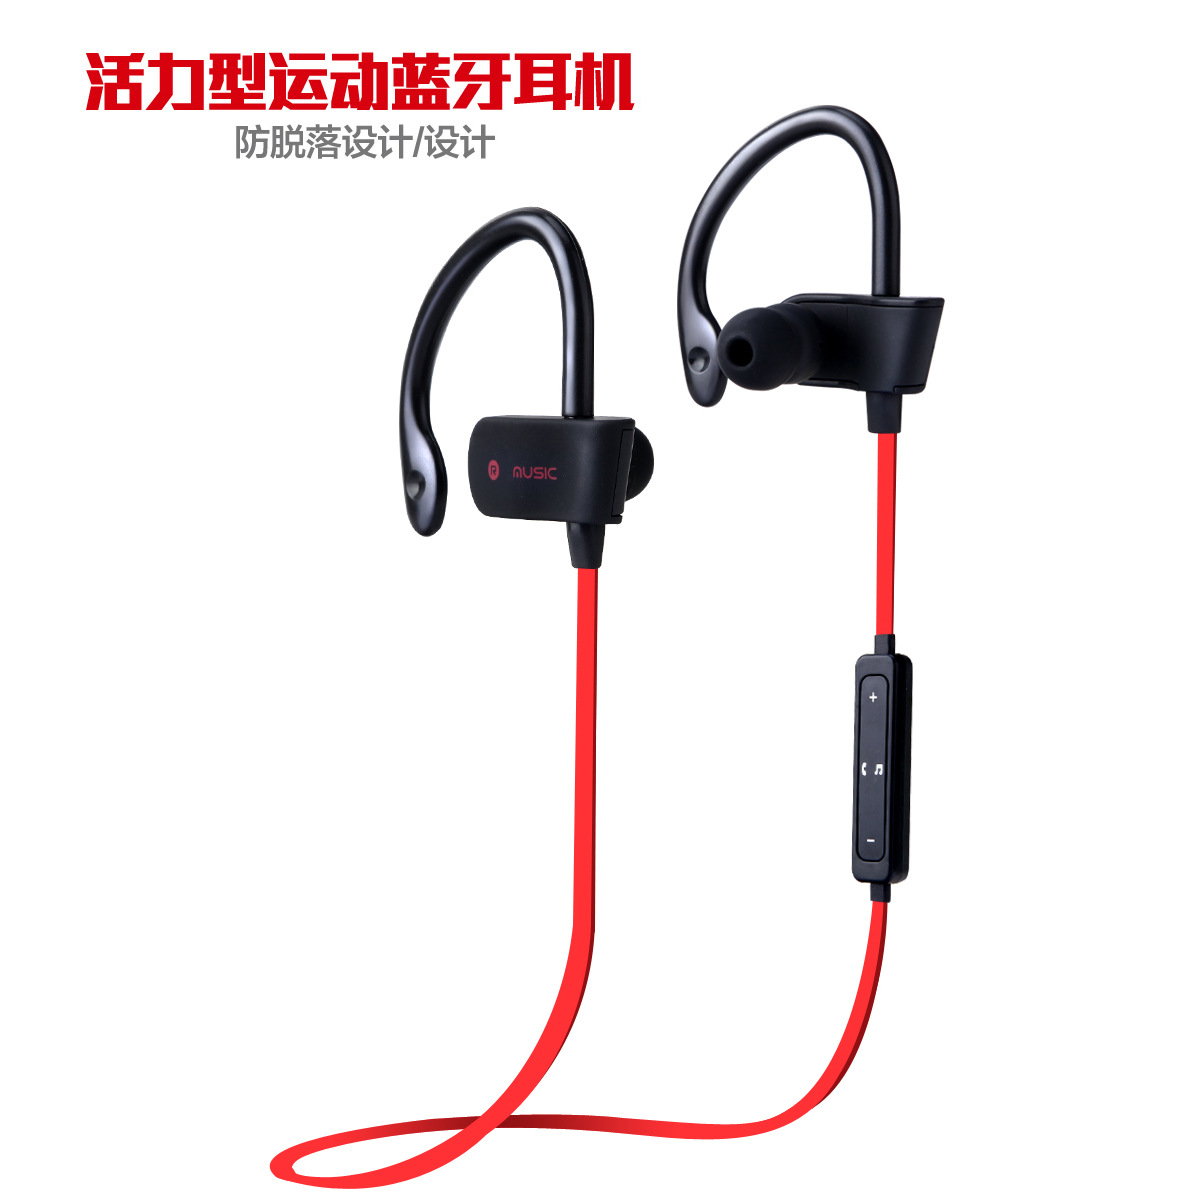 Fashion Bluetooth Earphone For Amazon Fire Kids Edition Wireless Earbuds Headsets Microp ...